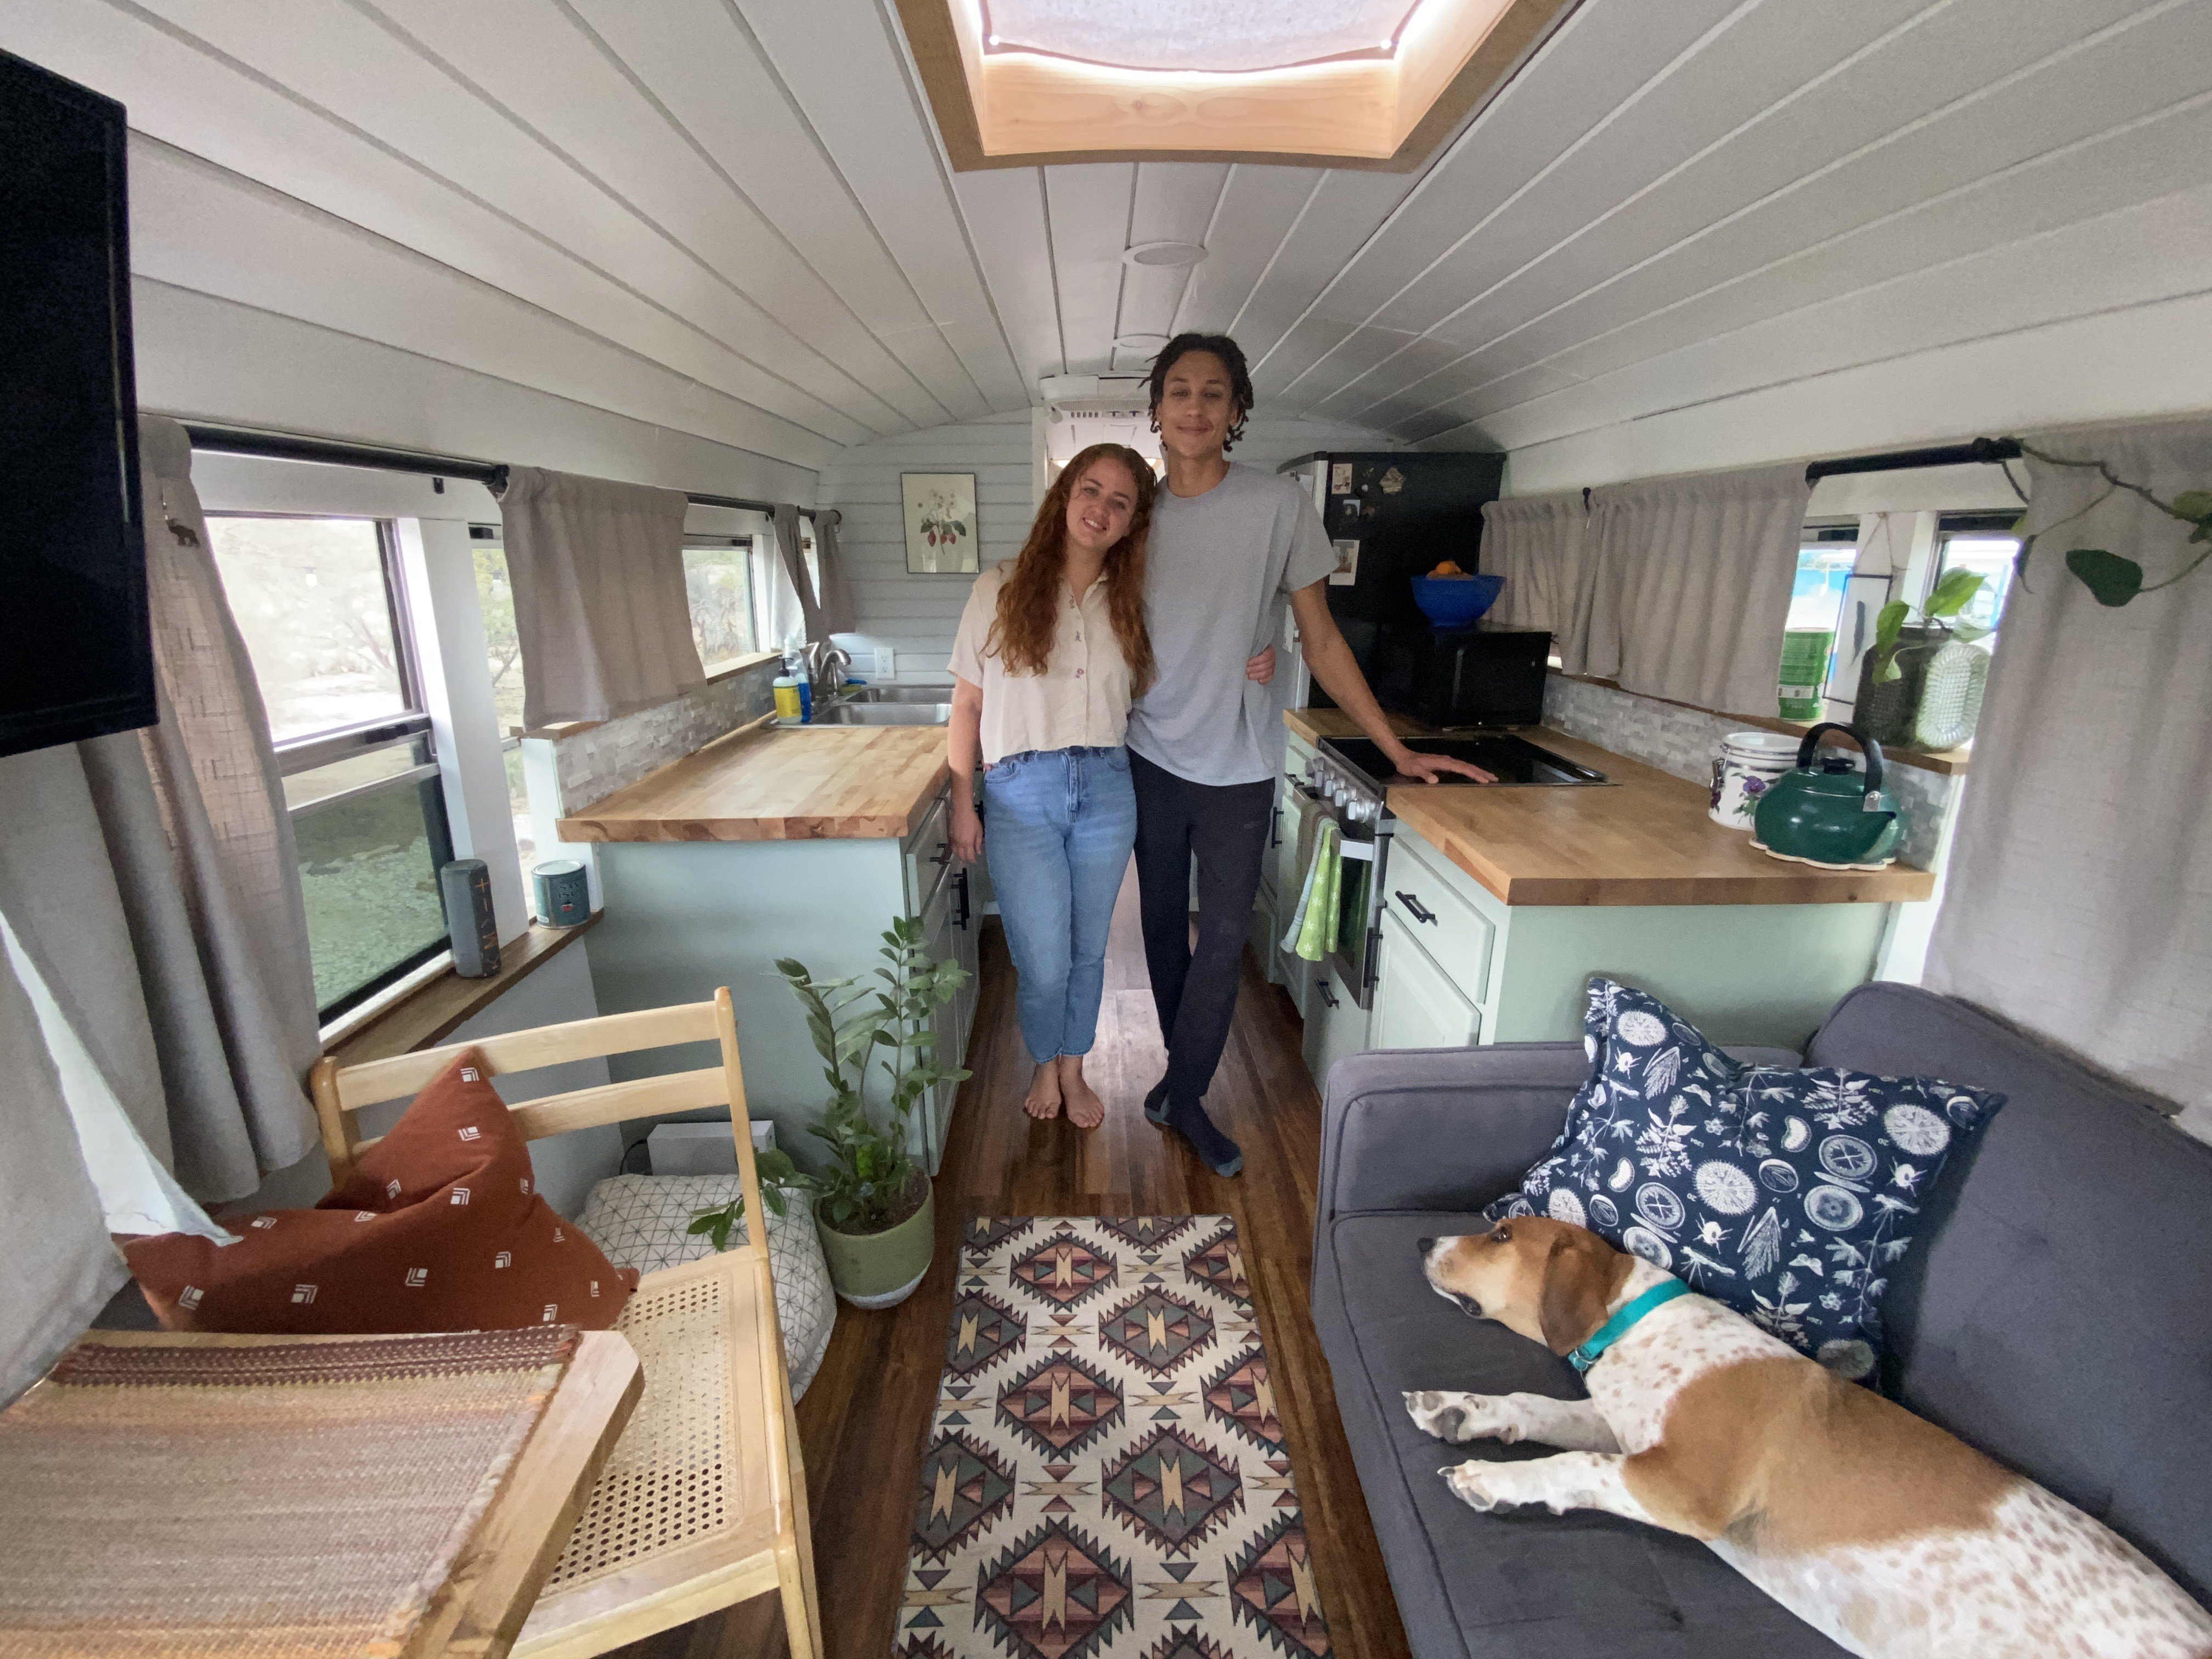 Camping in a School Bus, This RV Renovation Pushes the Limits